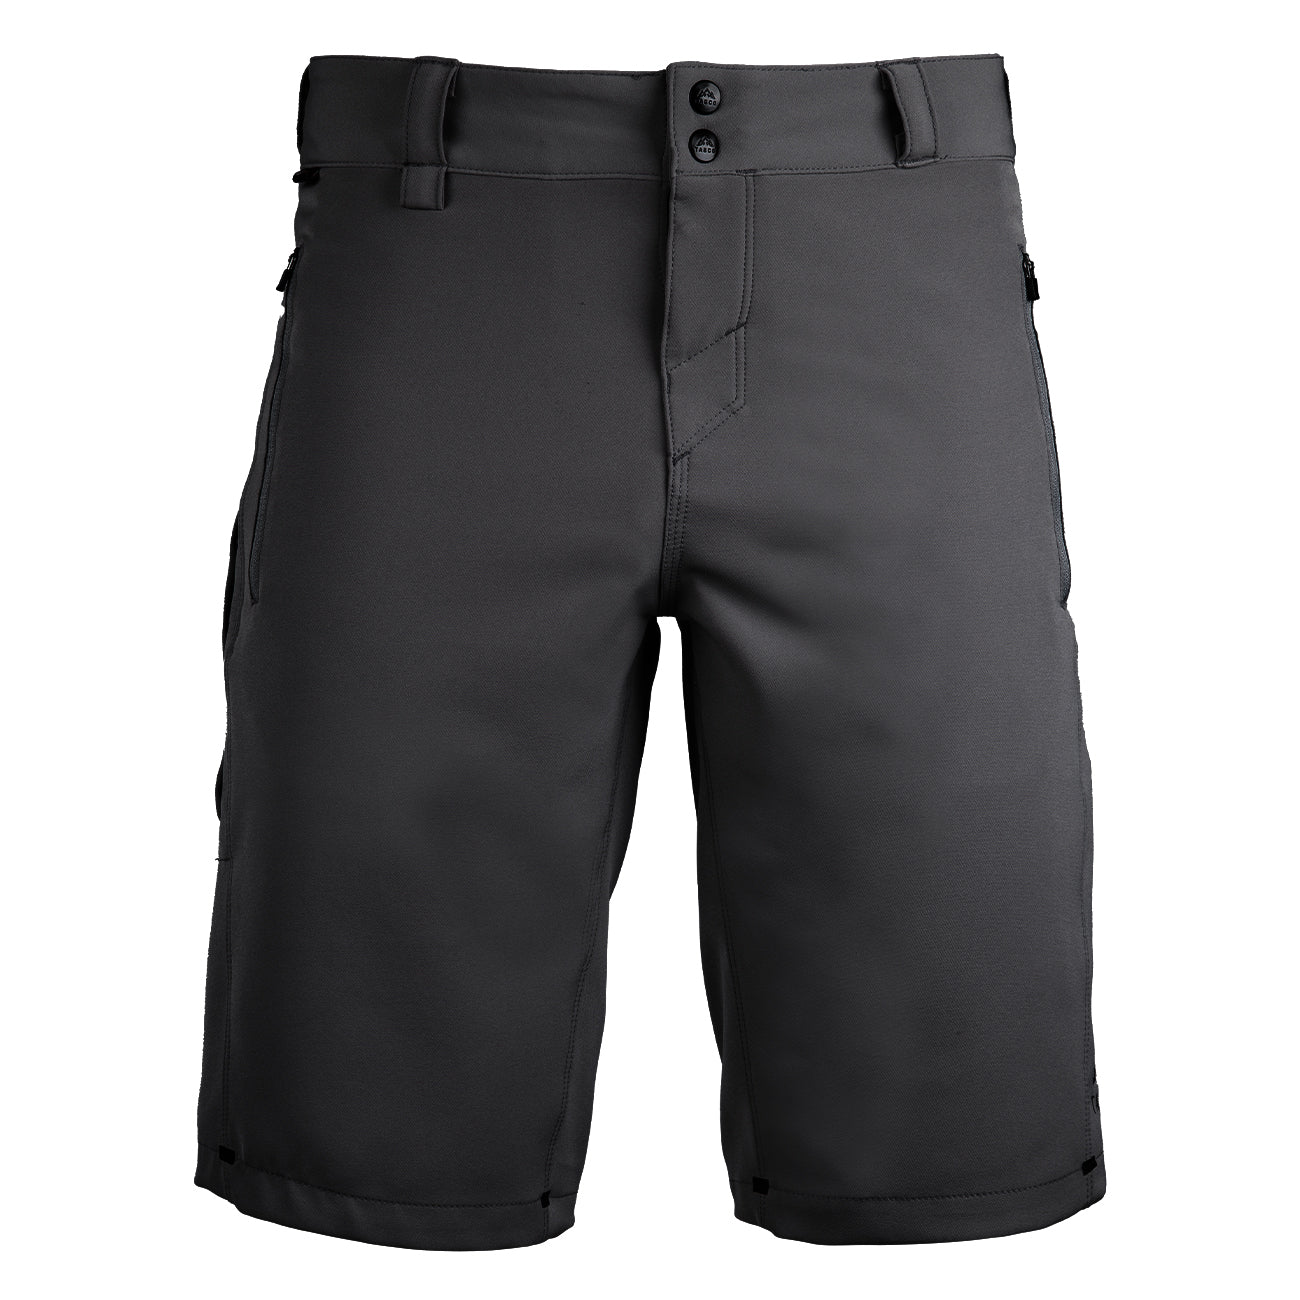 The Scout A/T MTB Shorts - Black (Pre-Orders - Shipping Mid April 2020) - MTB Lifestyle | TASCO MTB